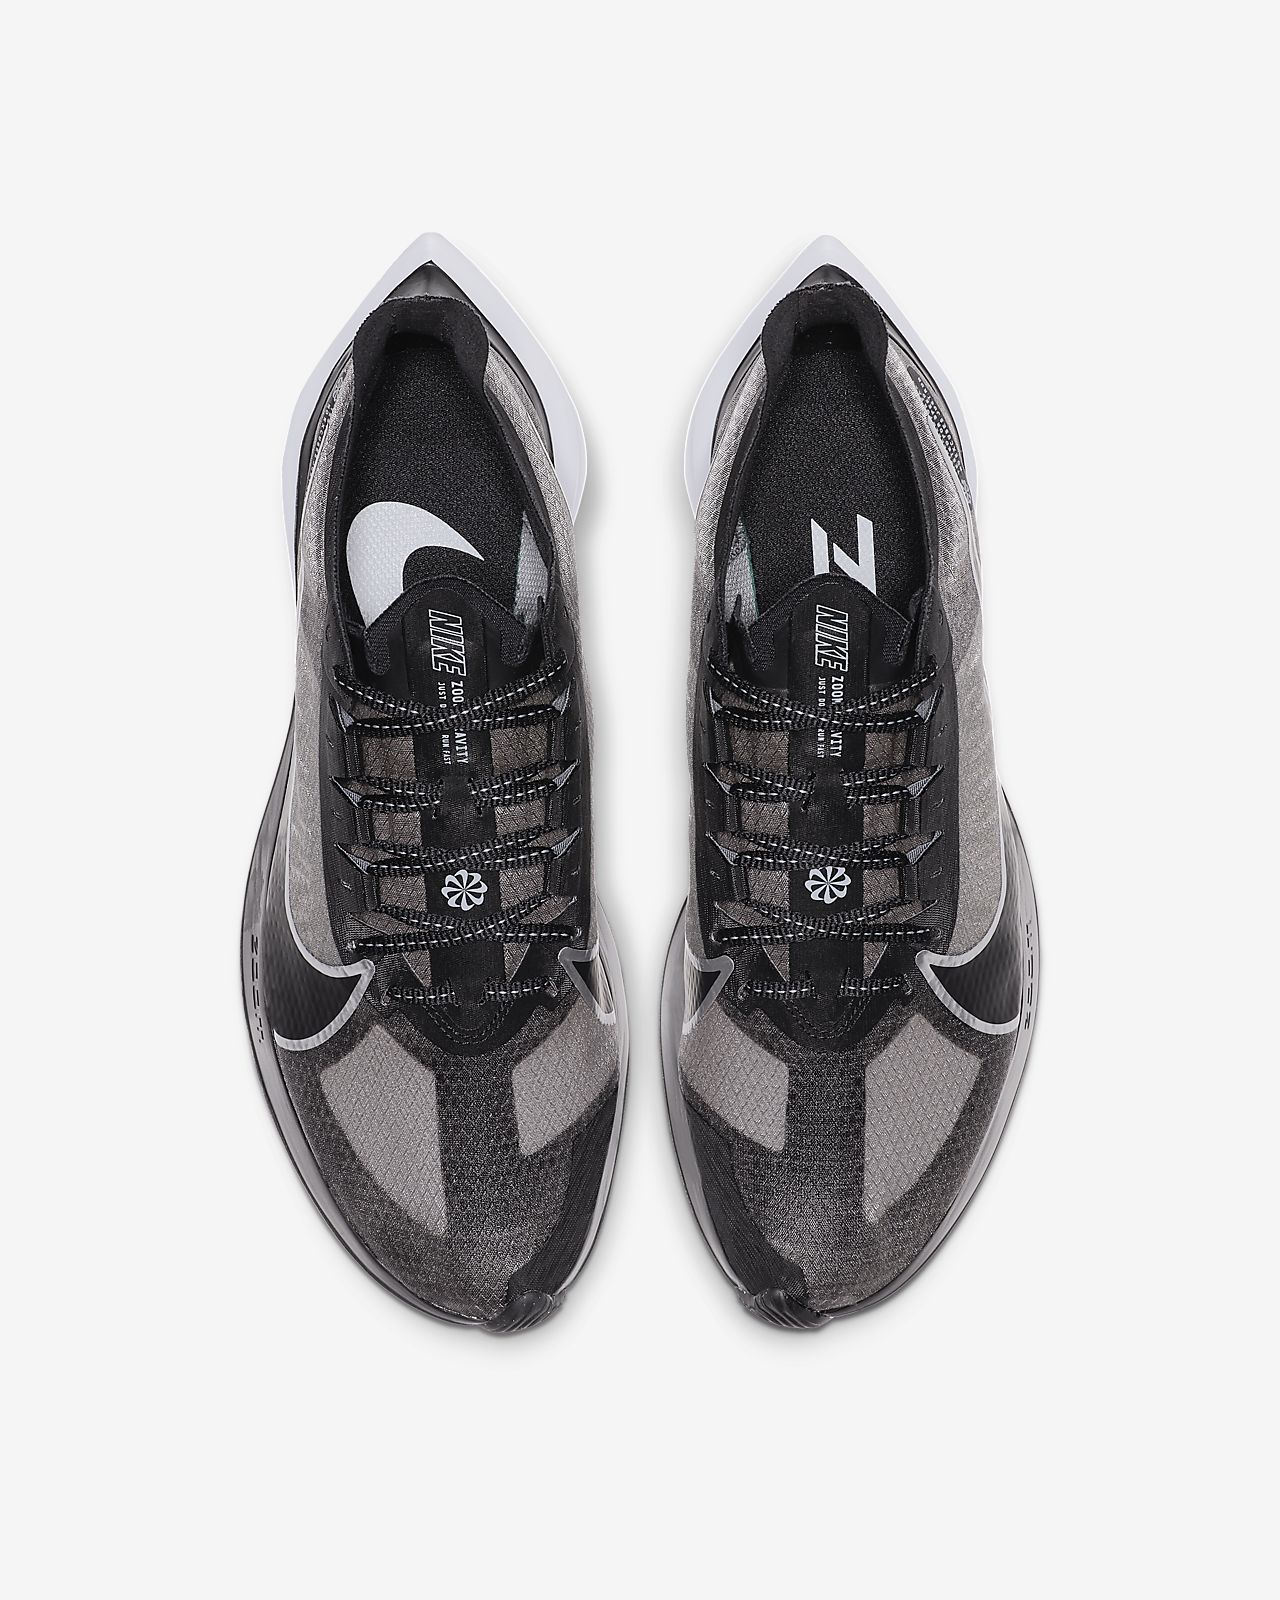 meet promo code sells Nike Zoom Gravity Men's Running Shoe